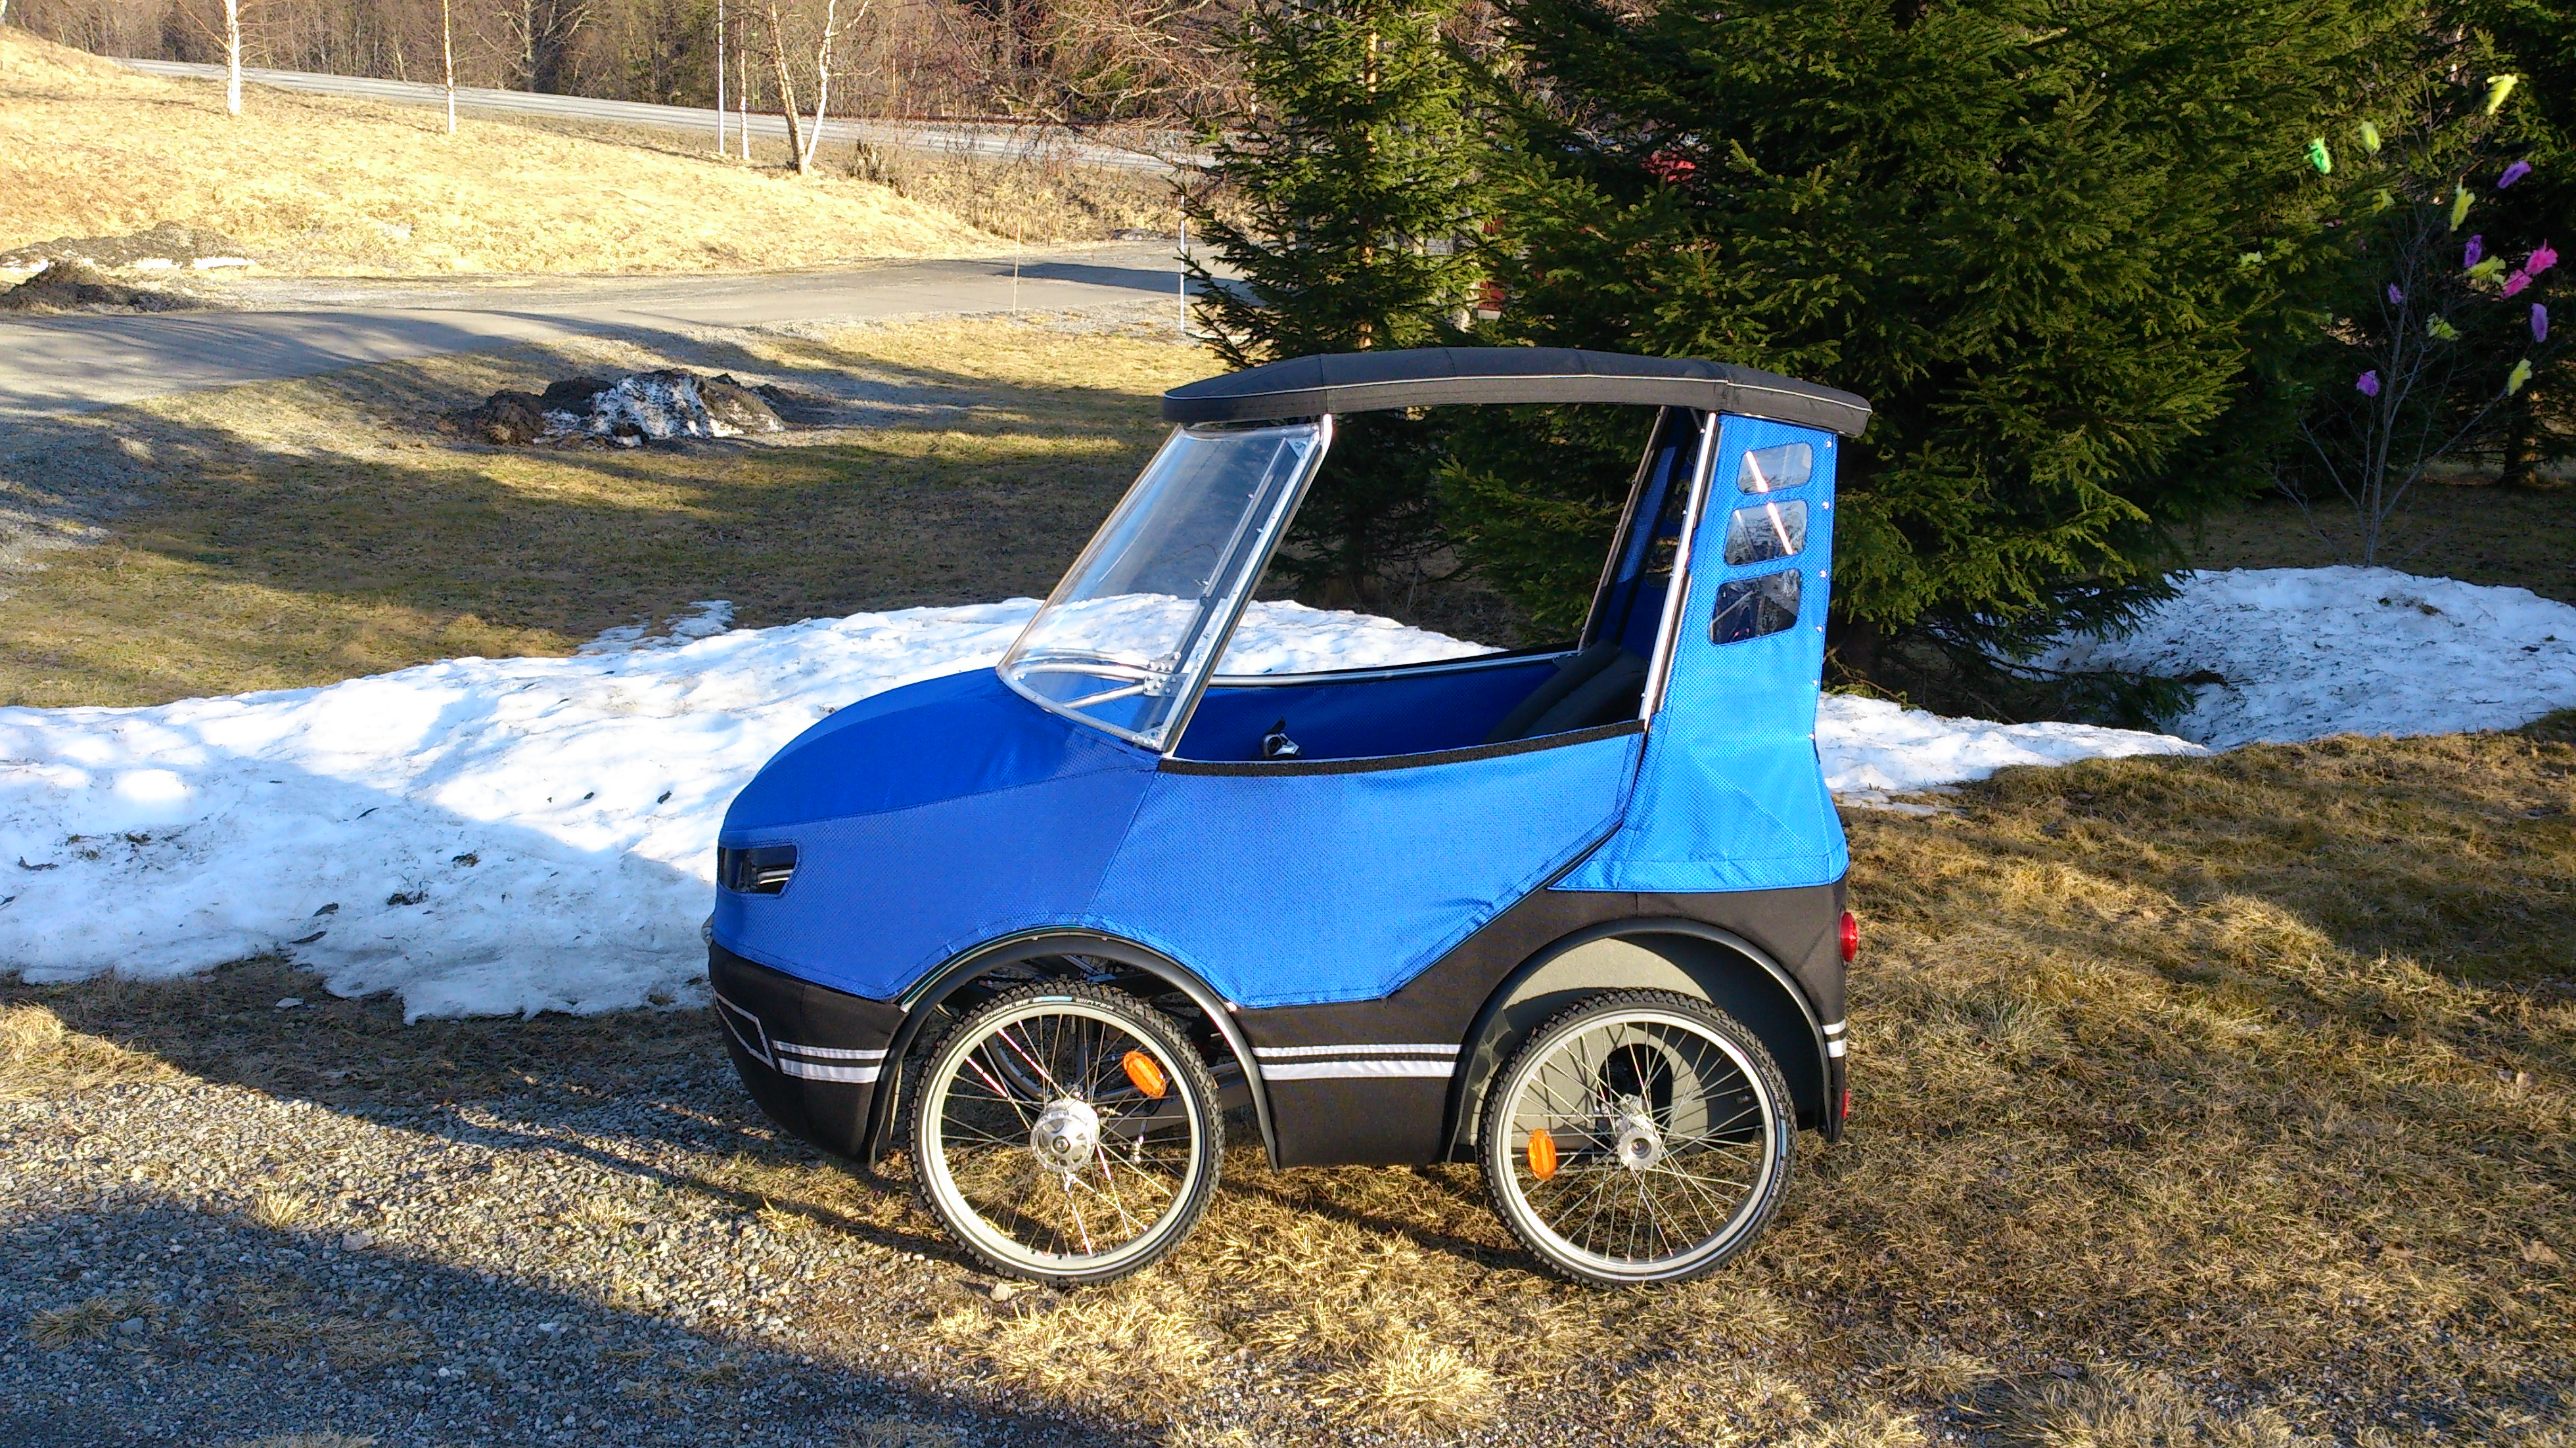 The podride is the world 39 s most adorable tiny car the verge for Is a bicycle considered a motor vehicle